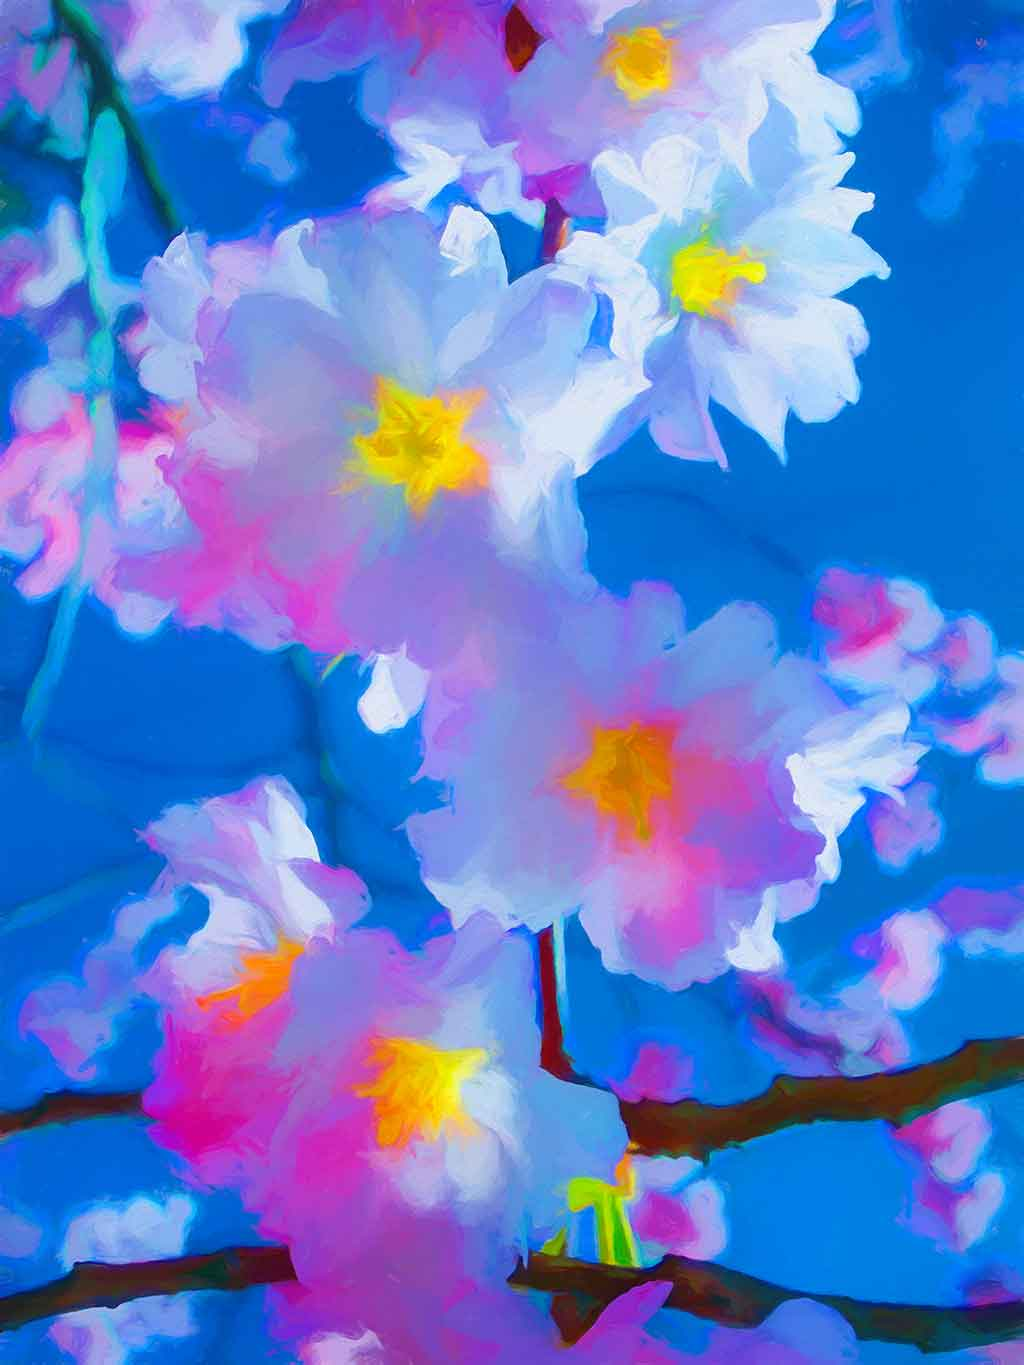 Cherry Flowers Blue Sky, digital oil painting and Art Canvas Print by Wieslaw Sadurski